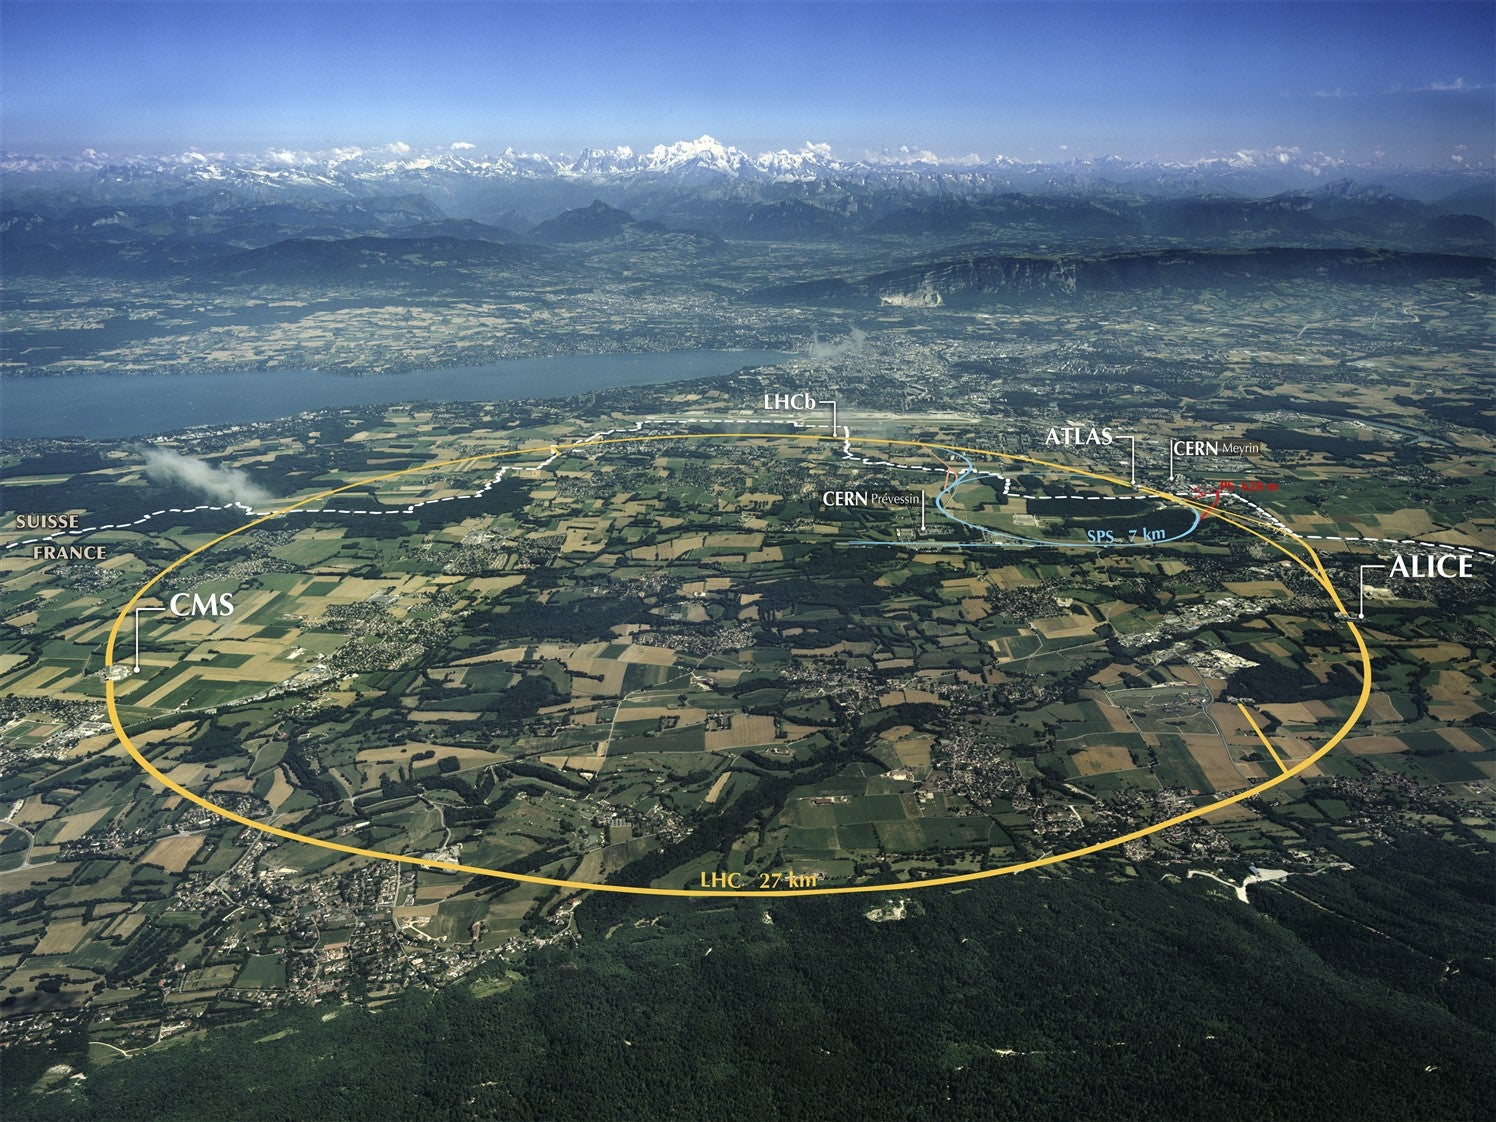 Aerial view of CERN